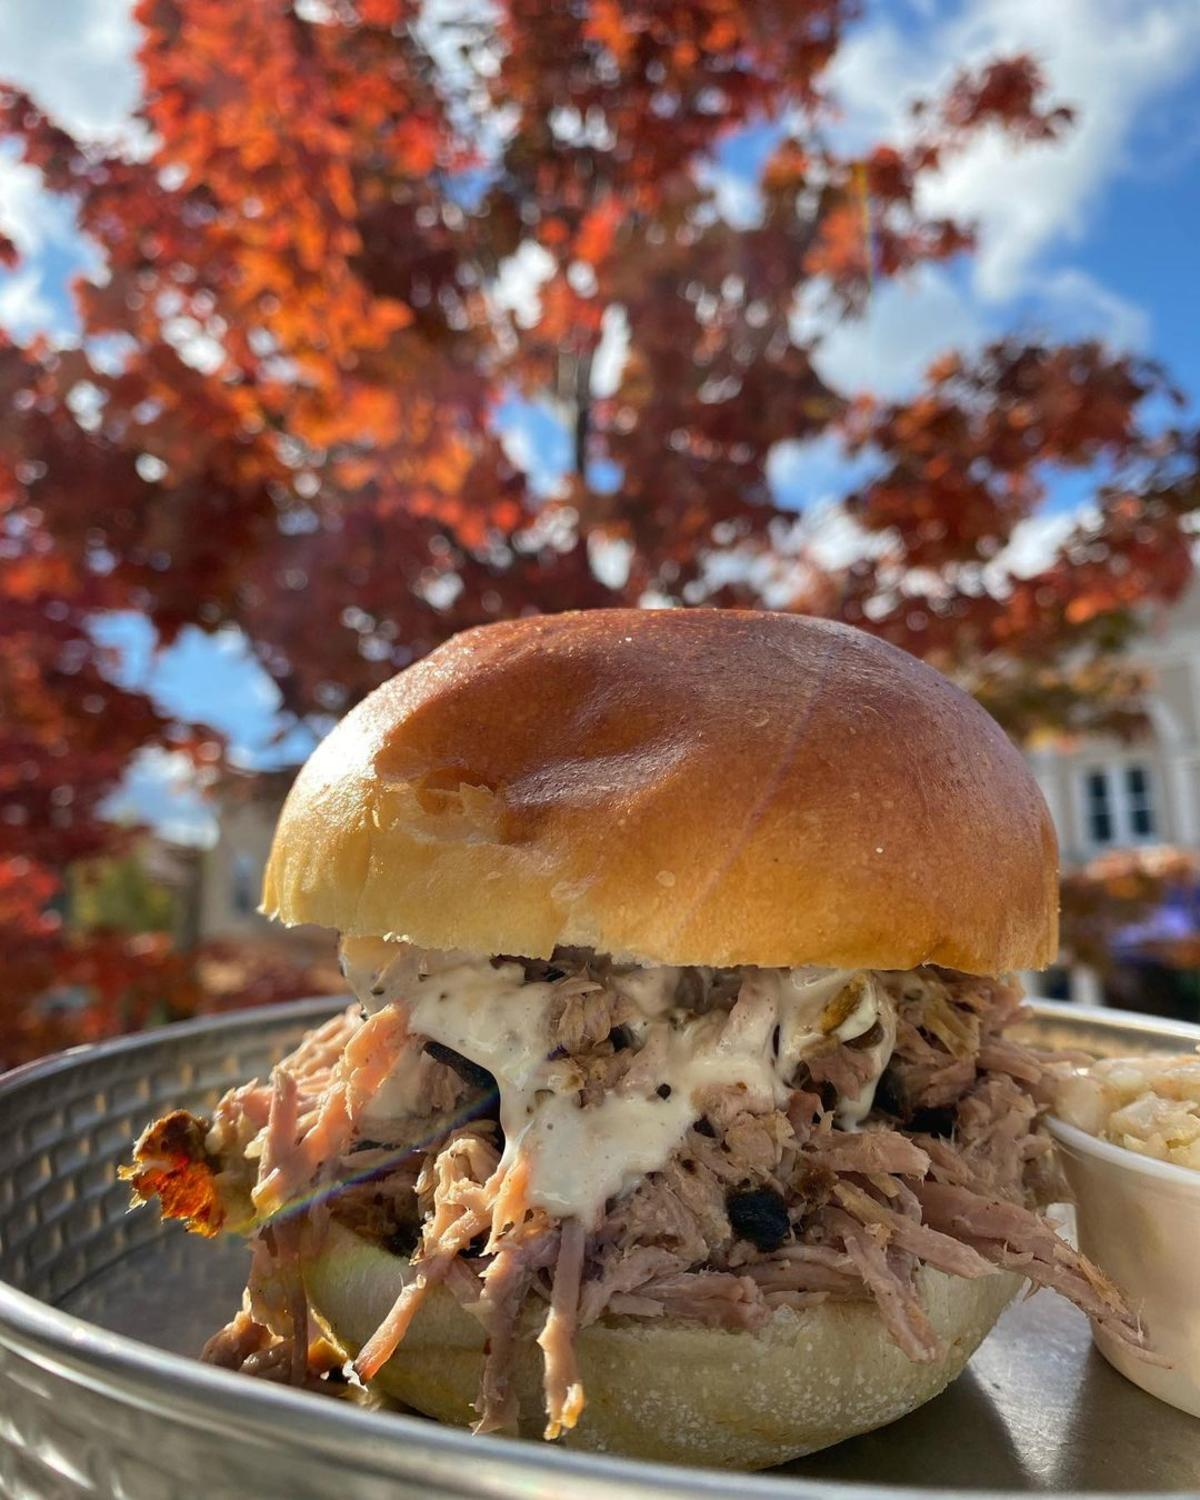 Heaping Carolina BBQ Pulled Pork Sandwich served up outside with a beautiful backdrop of fall trees at Molasses Smokehouse + Bar in Midland